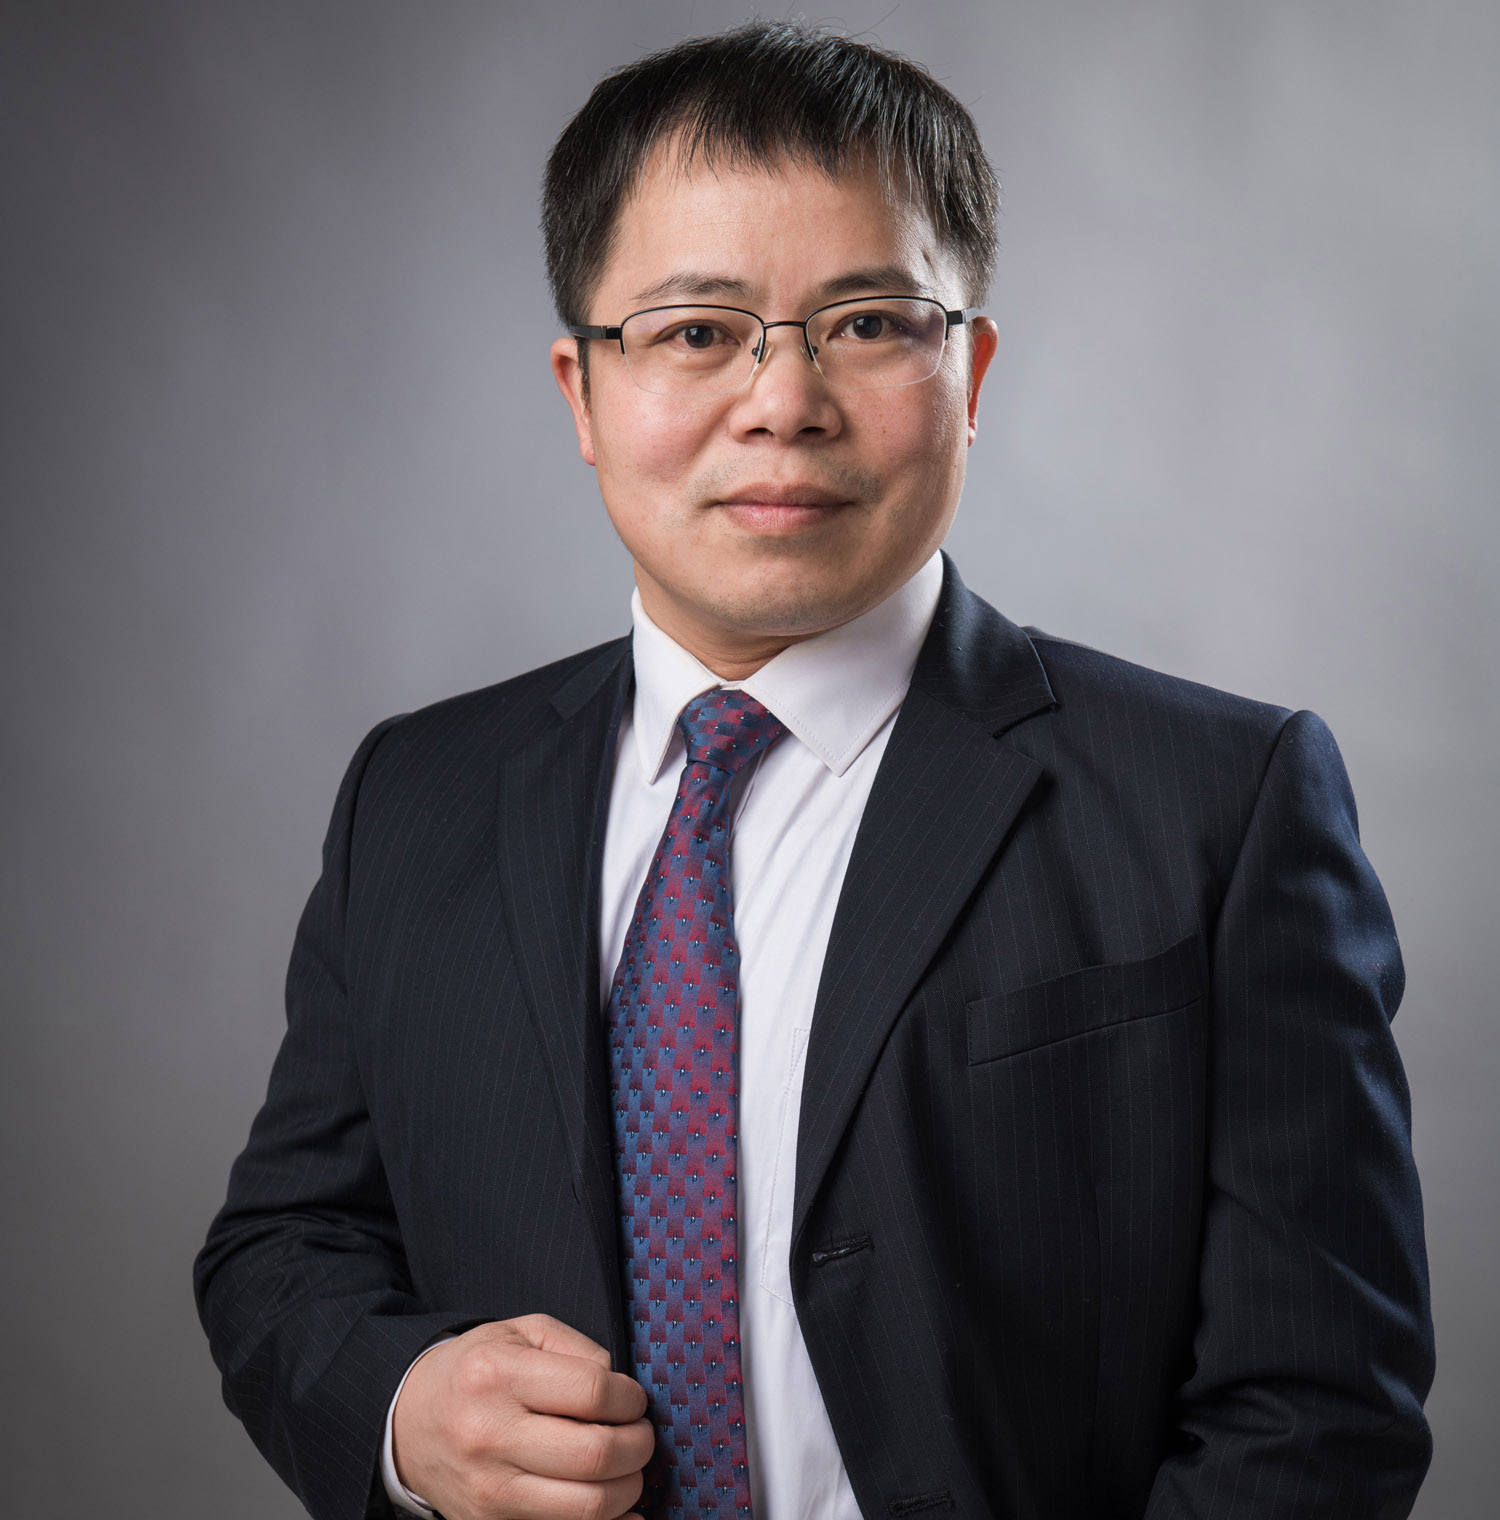 Dr. Liming Chen